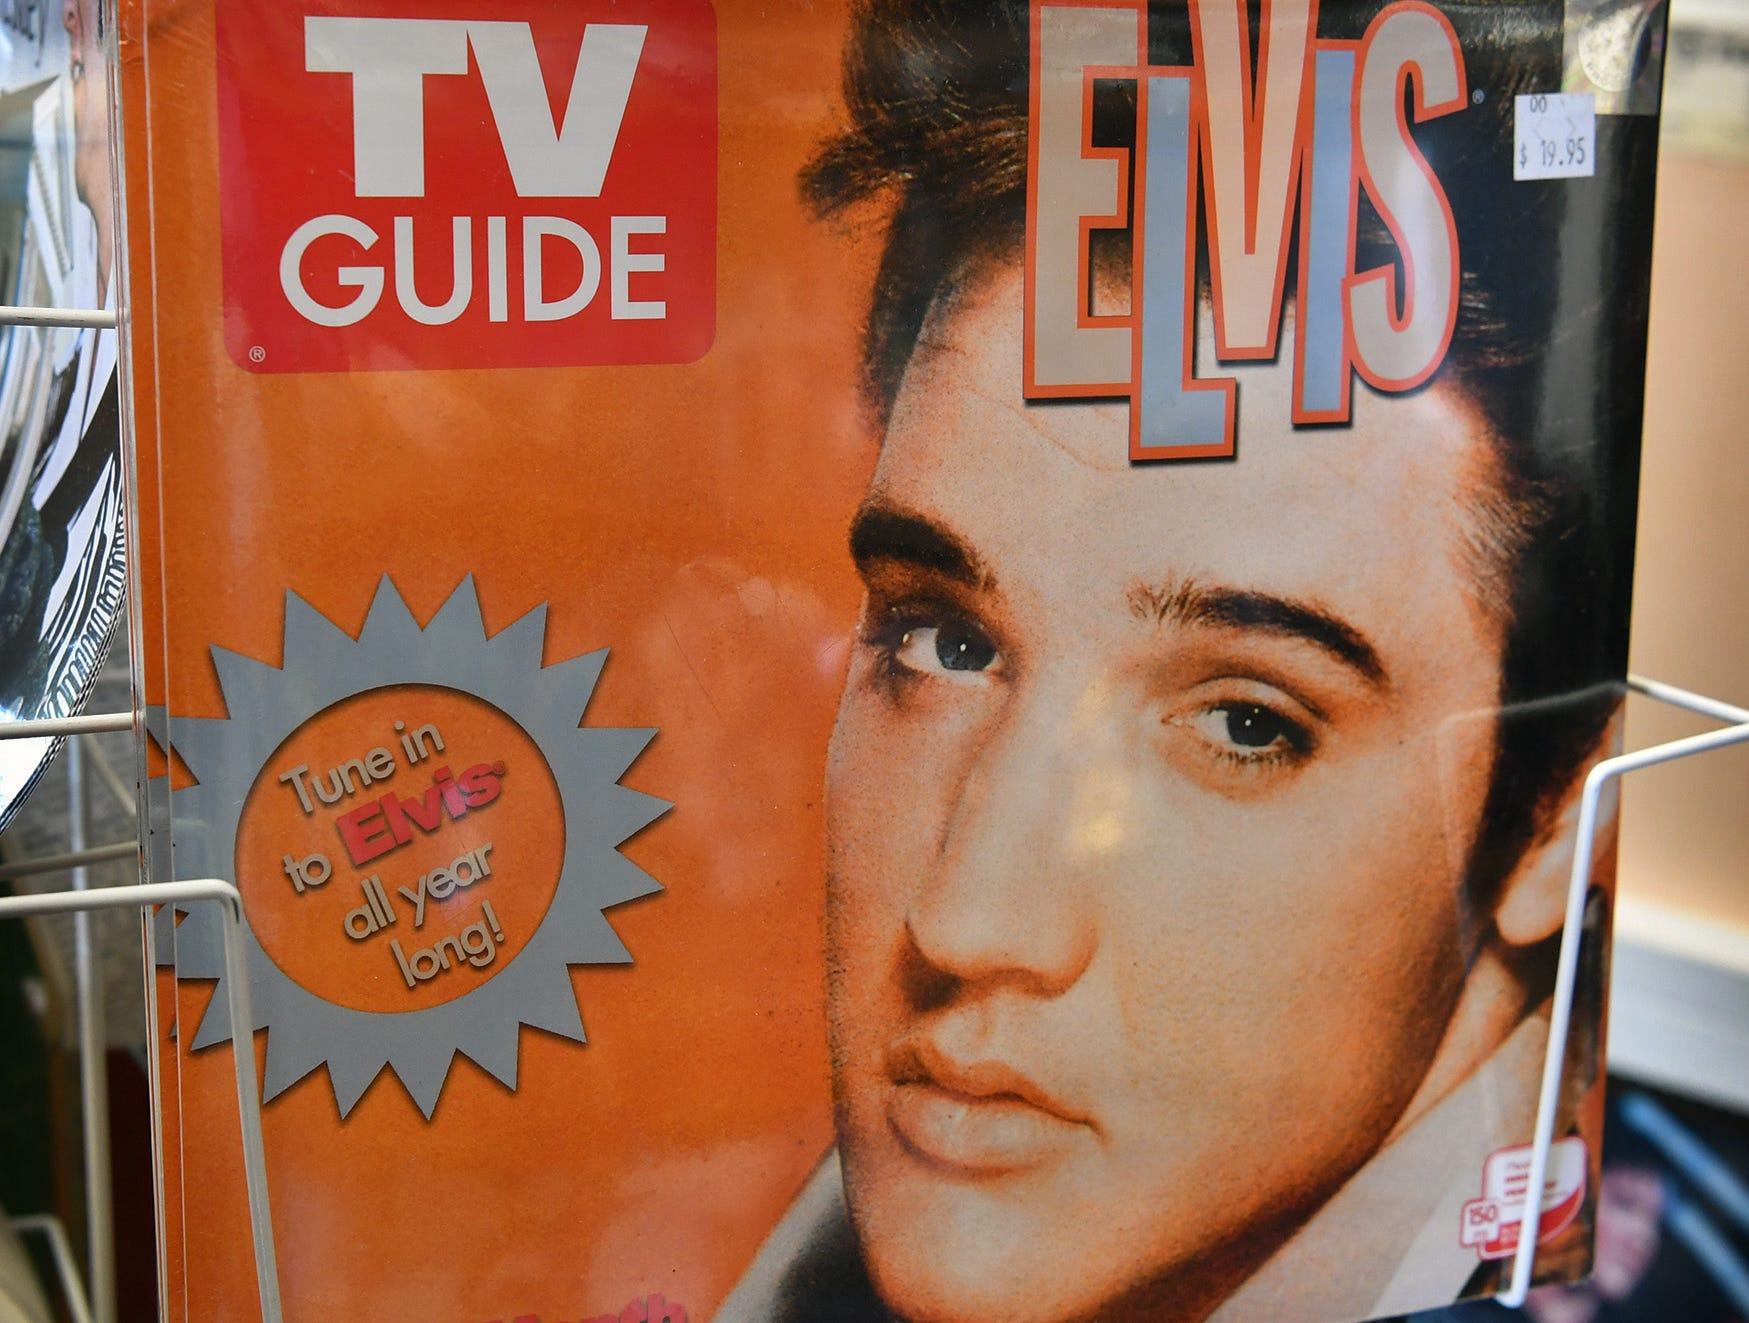 An Elvis Presley calendar at the Elvis Always Gifts and Collectibles store on 8th Street. His birthday is January 8 and Presley would have been 84 years old.